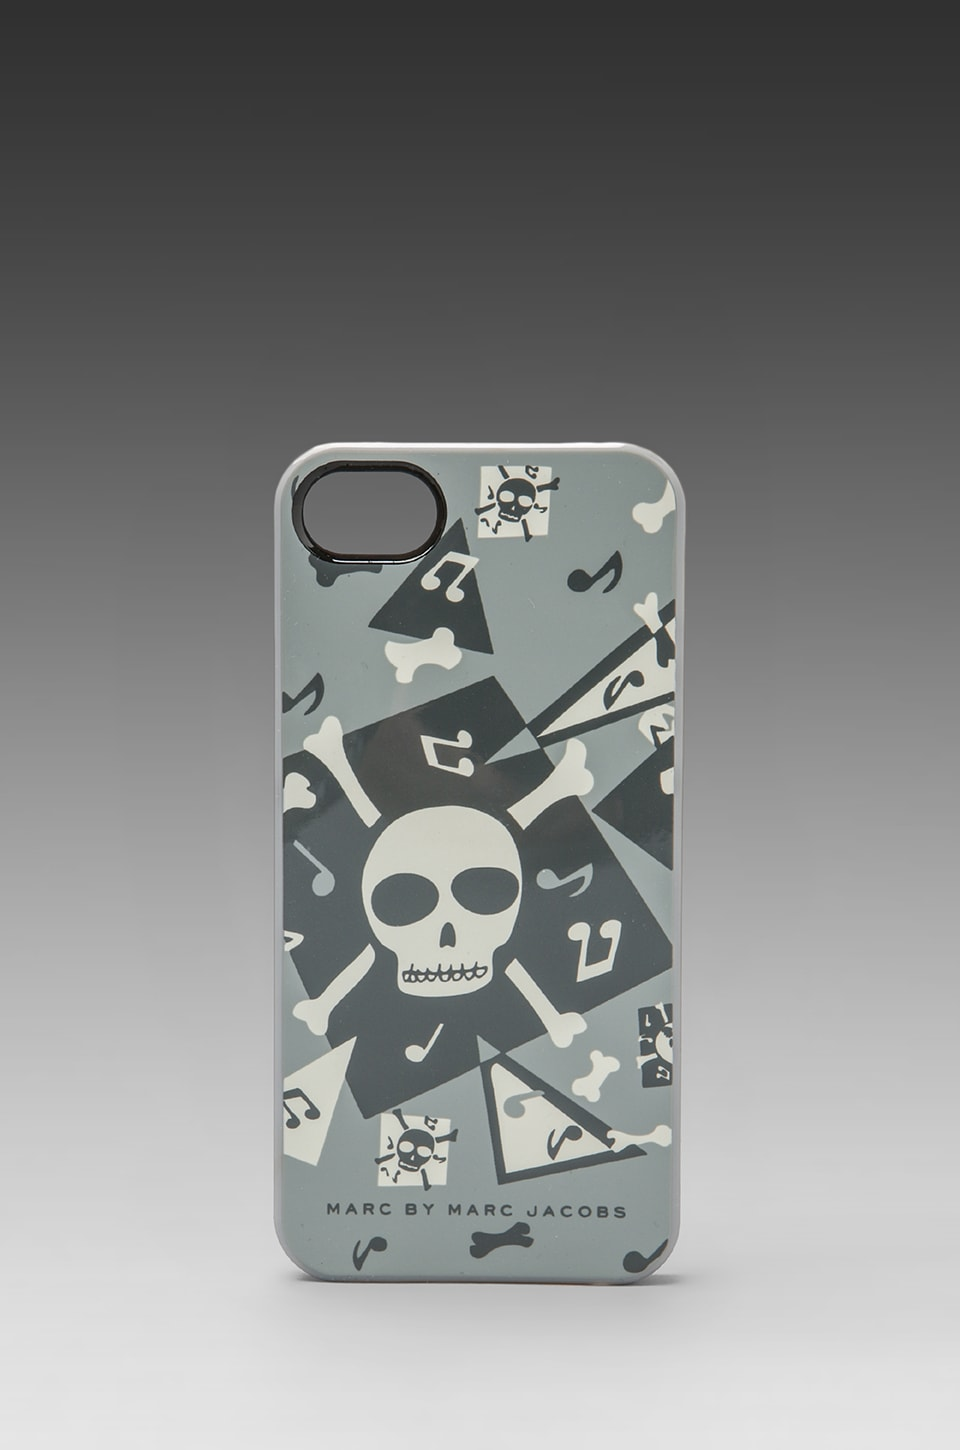 Marc by Marc Jacobs Bones Phone Case in Gunmetal Multi